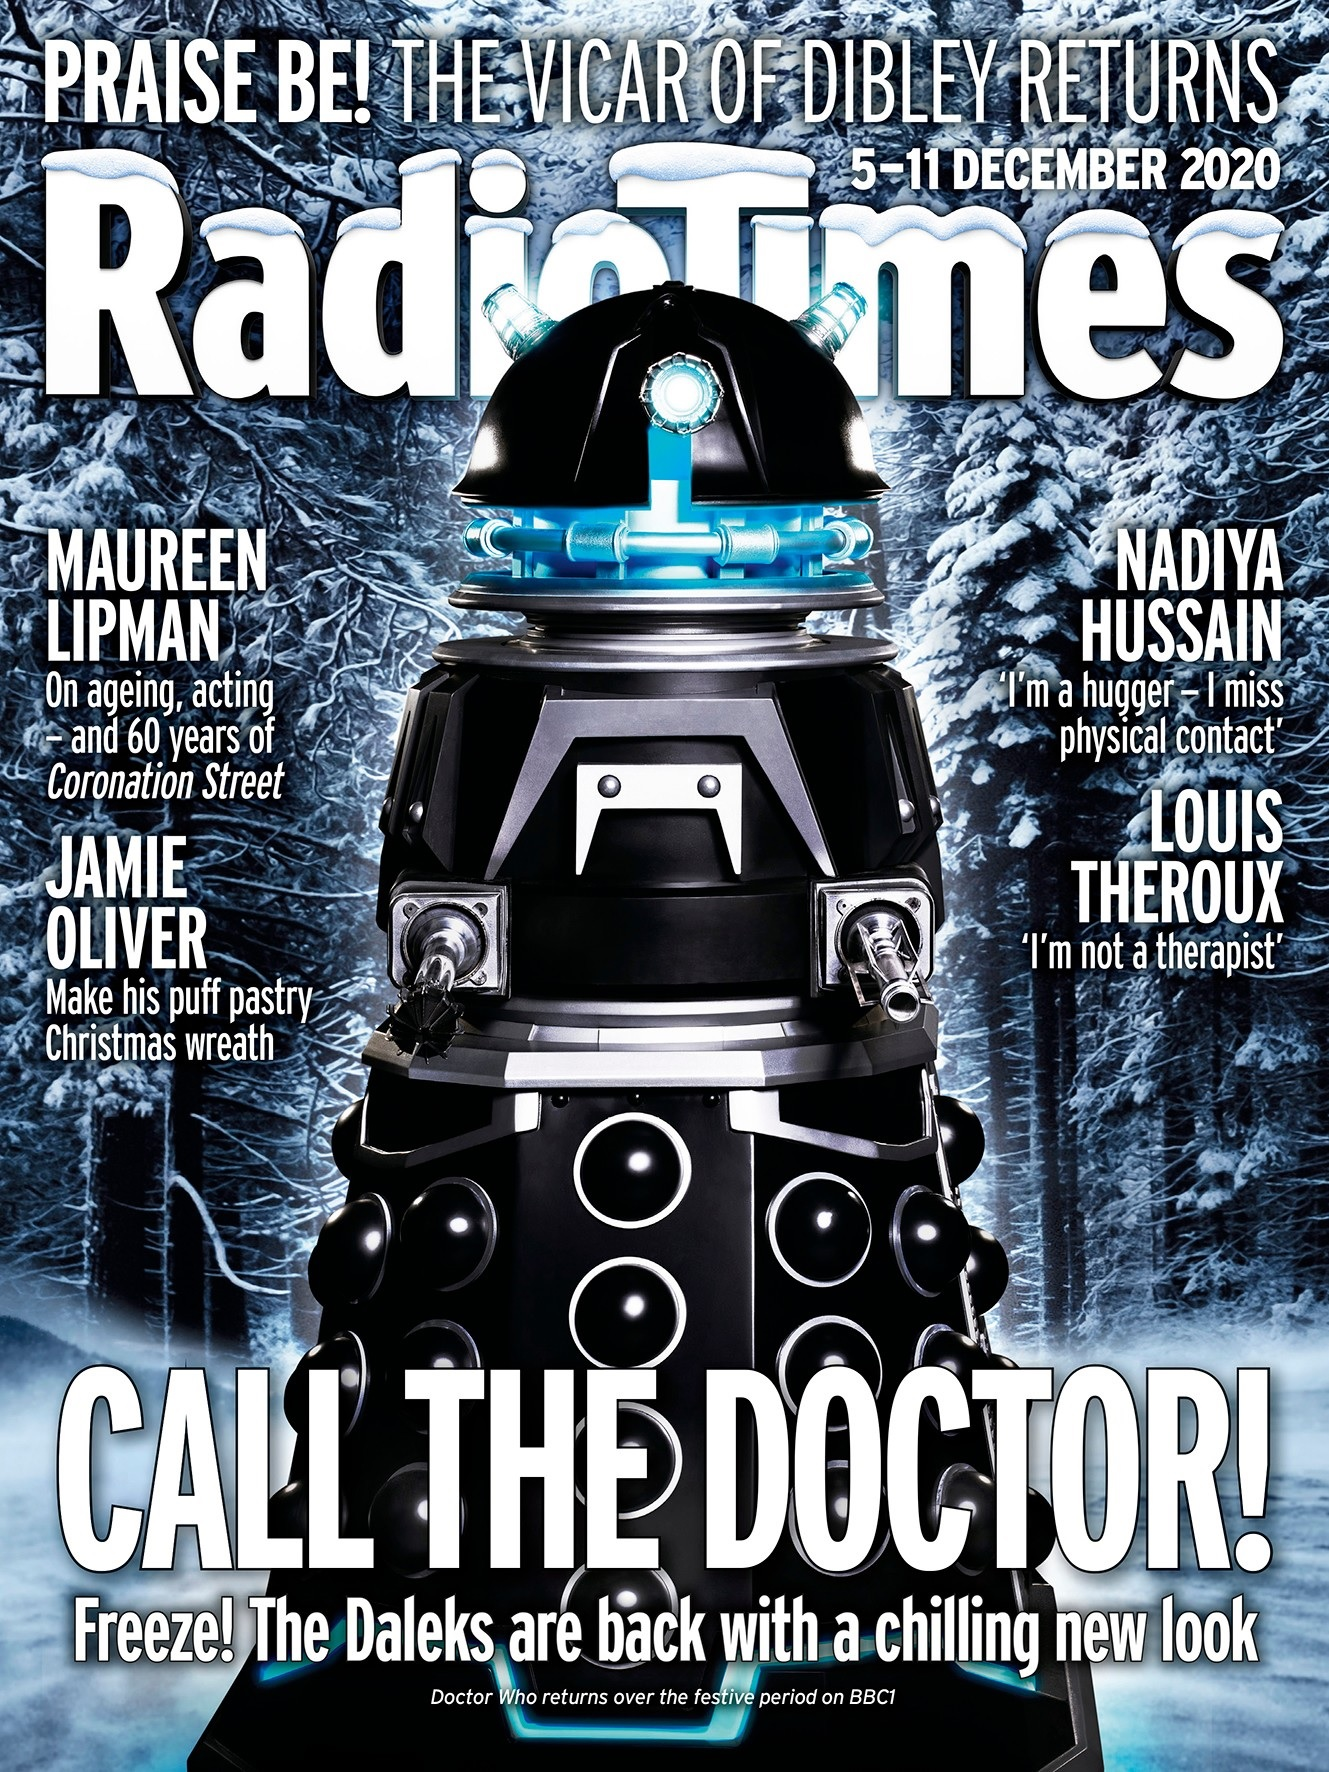 SD1 on the cover of the Radio Times.